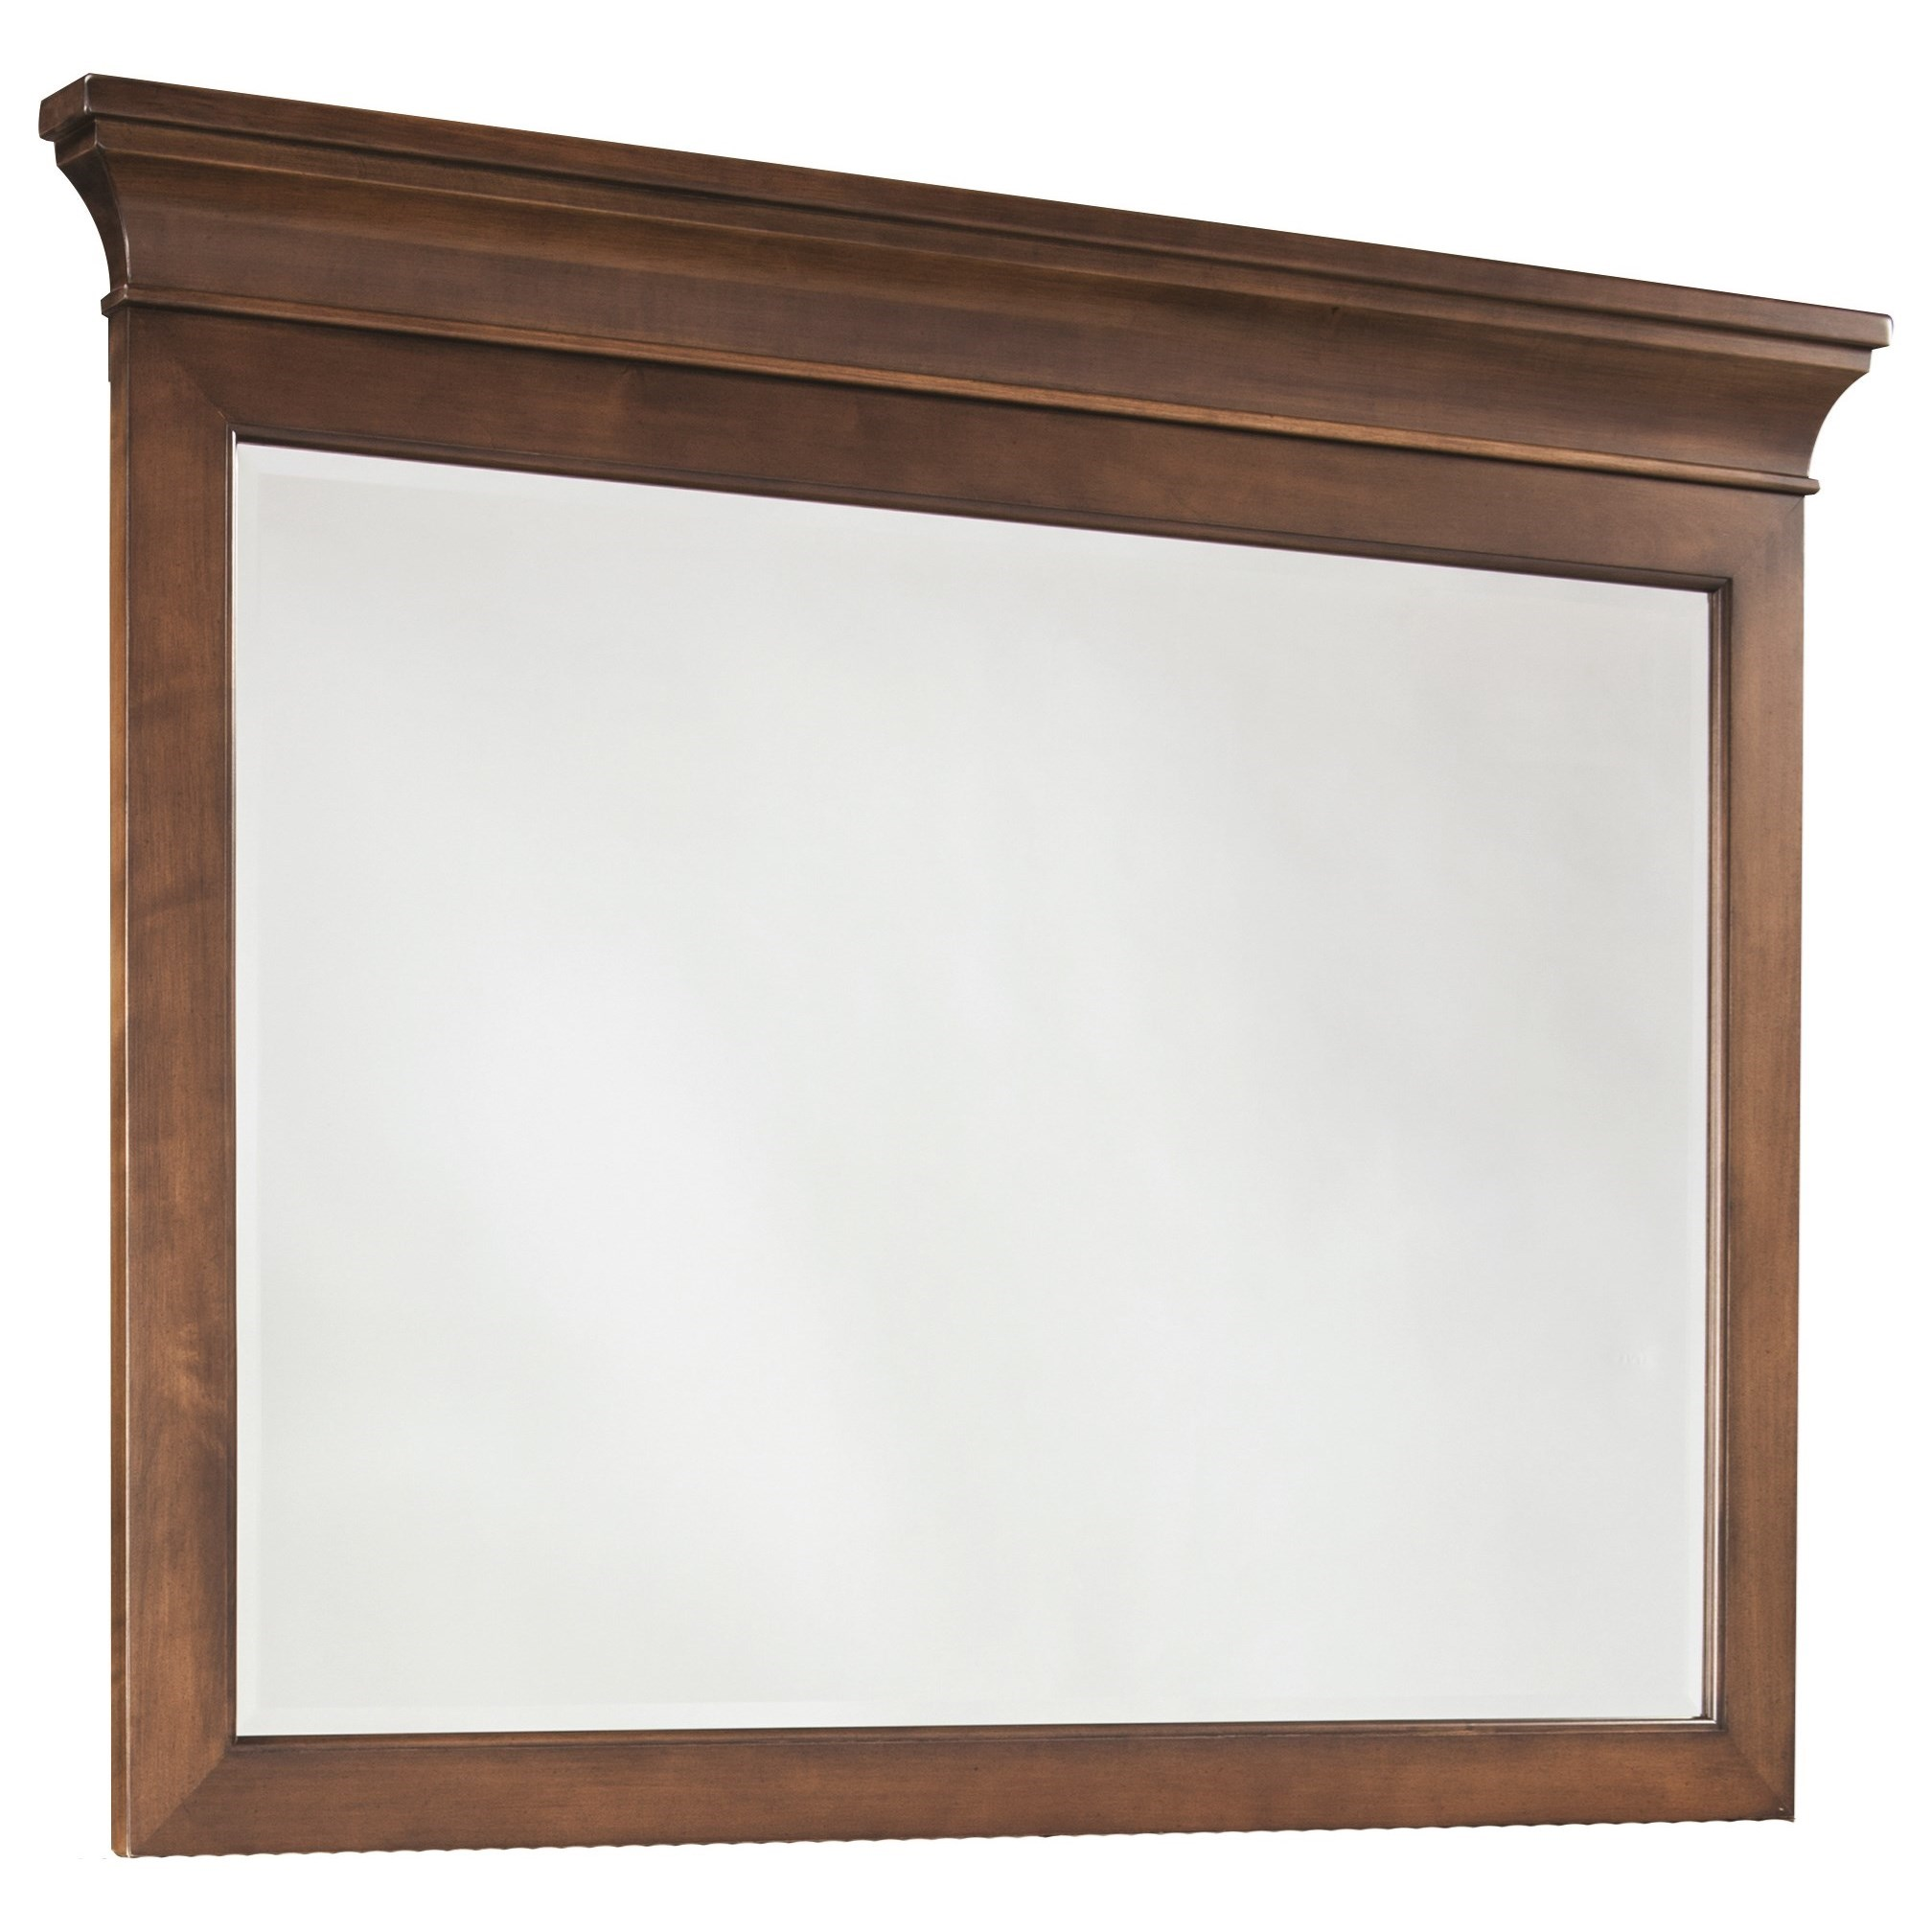 Prominence Mirror by Durham at Jordan's Home Furnishings